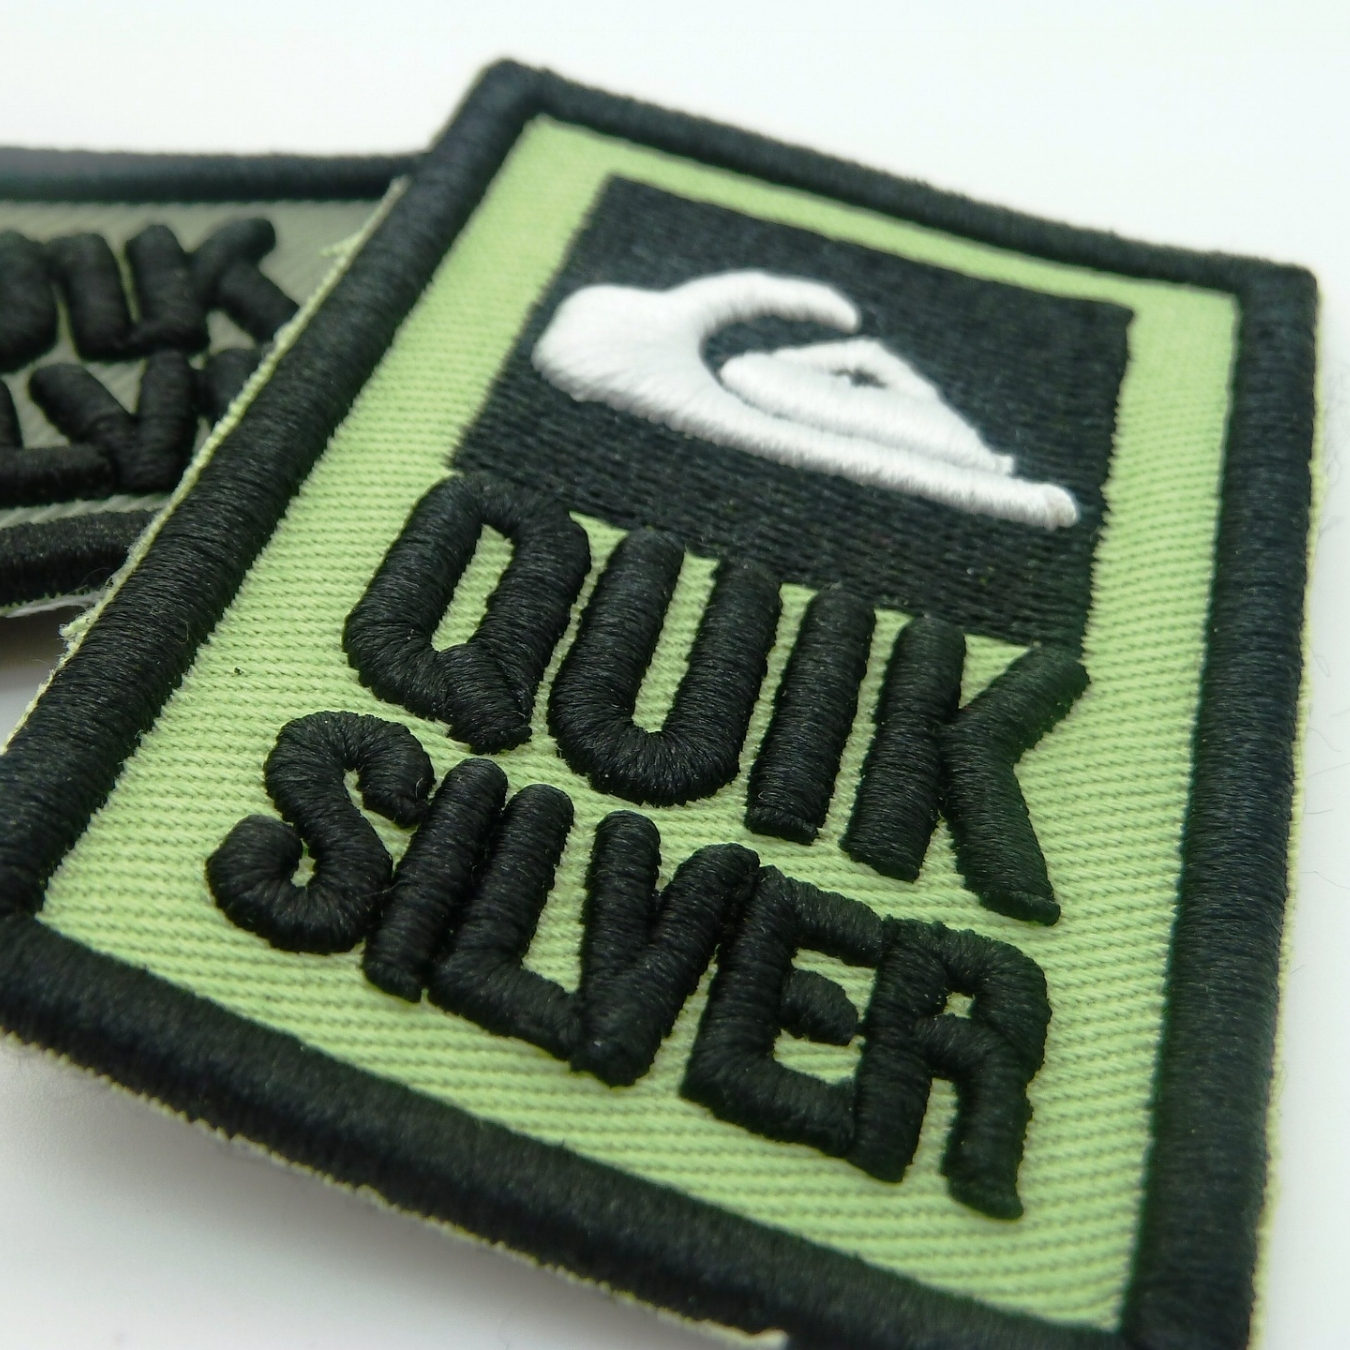 3D embroidery Patches, Emblems, Crests